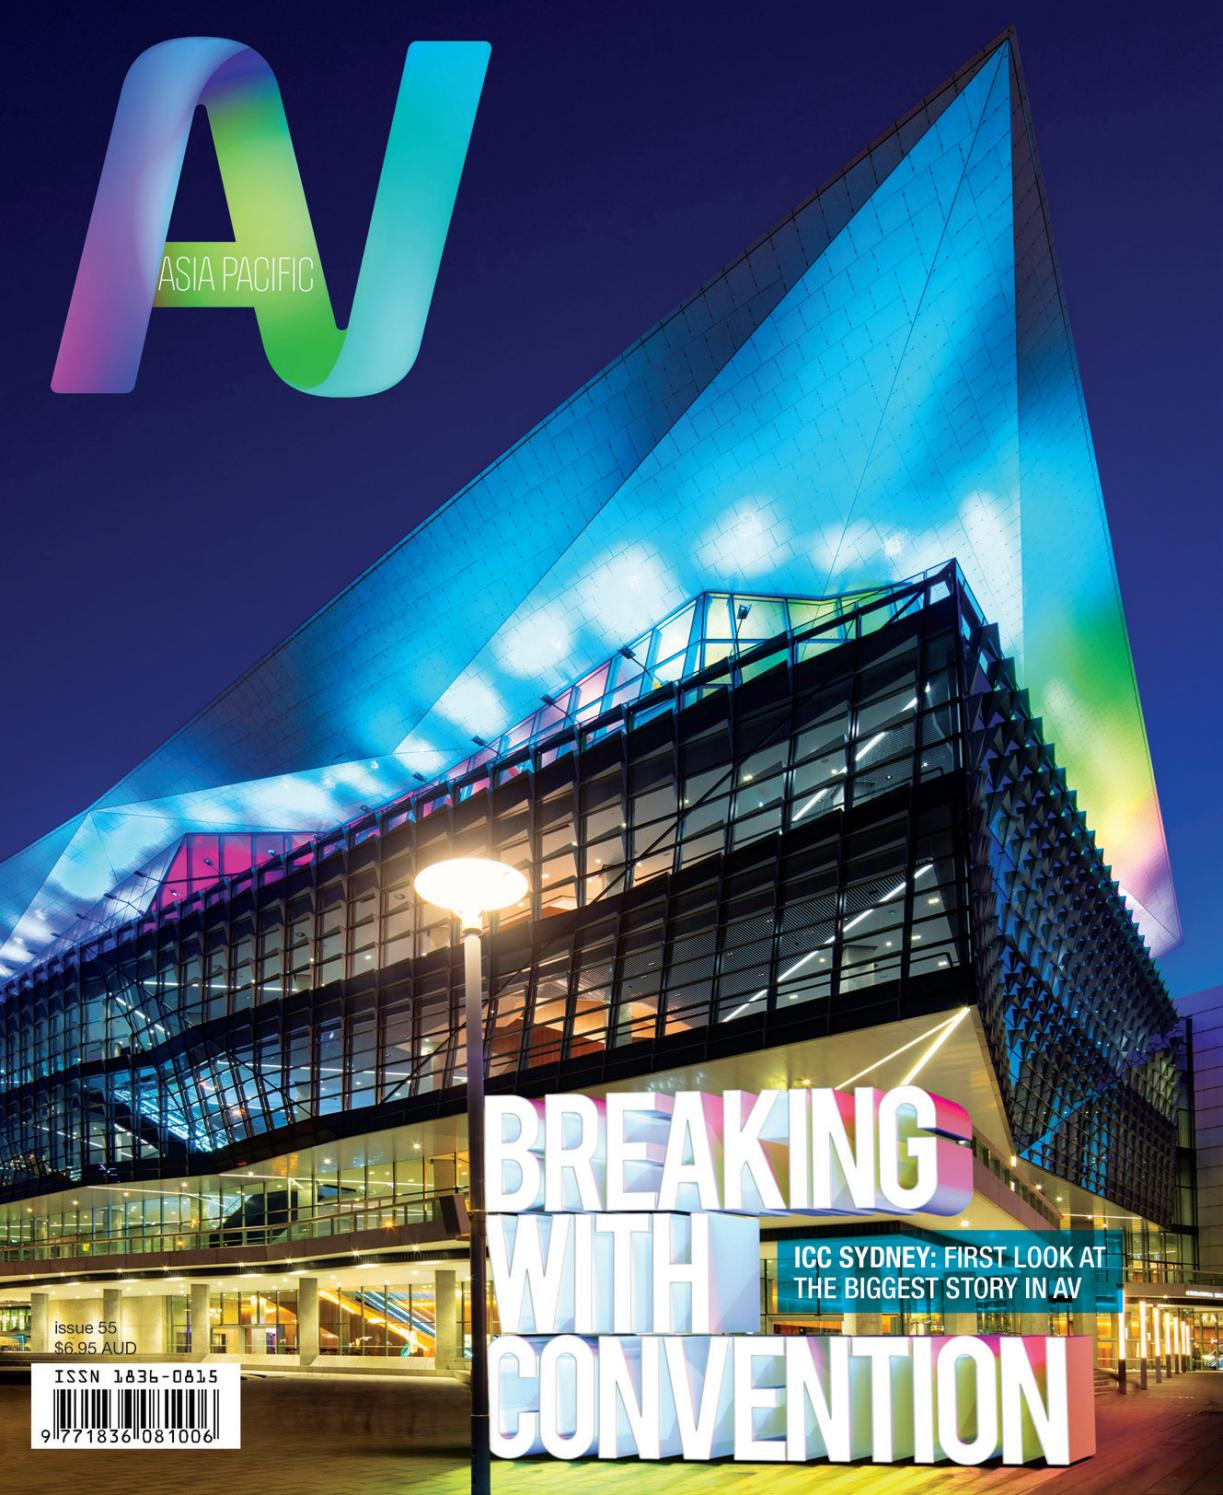 Av asia pacific magazine the new samsung smart signage platform av - Av Asia Pacific Magazine The New Samsung Smart Signage Platform Av 11